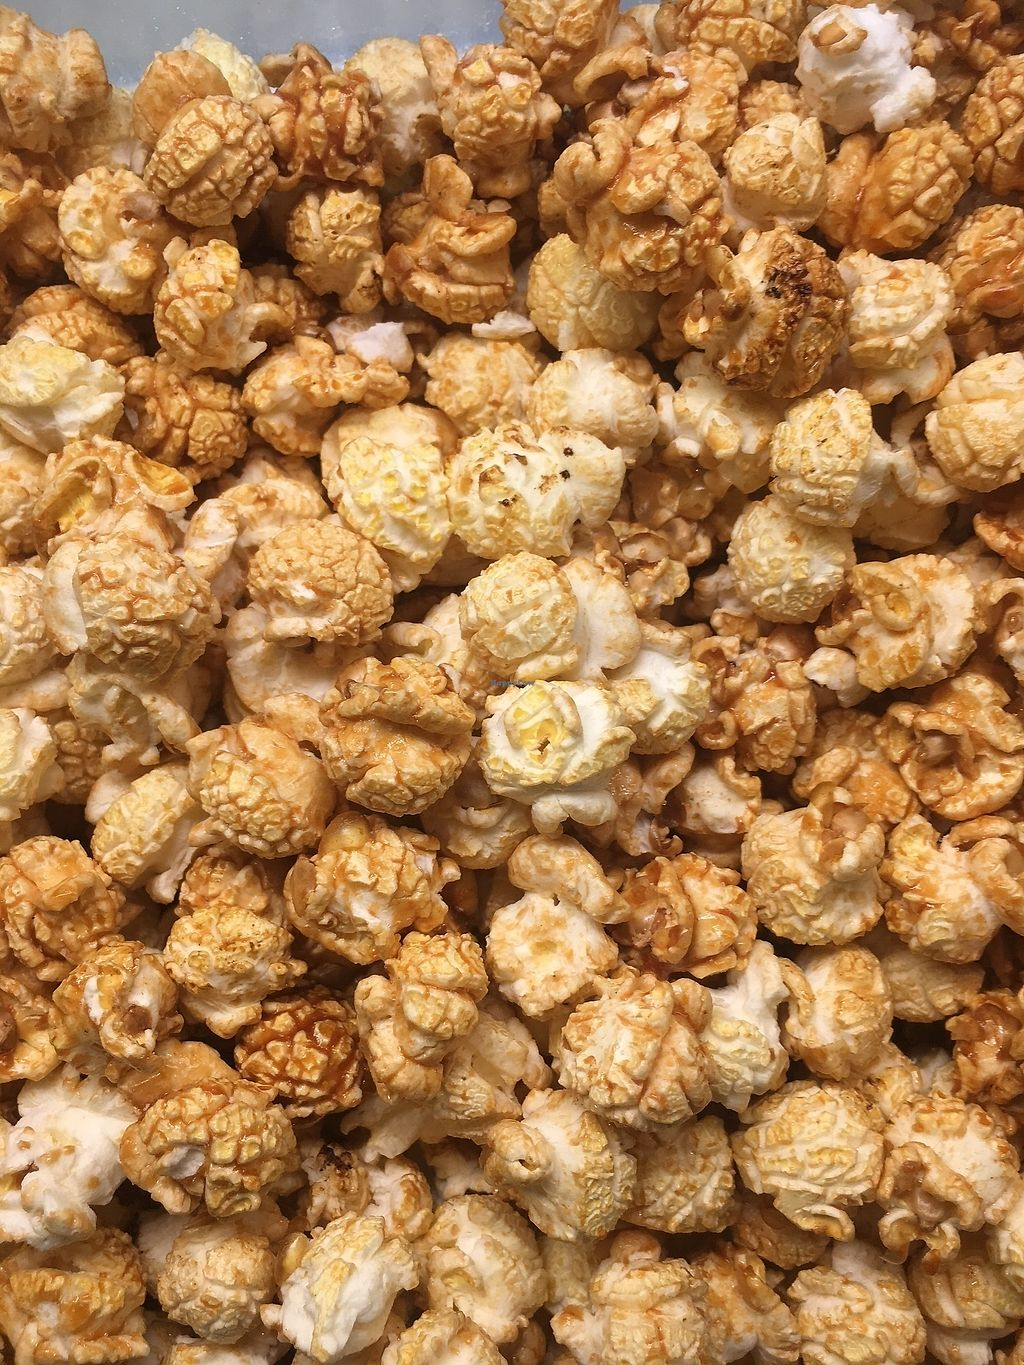 "Photo of Sweet-E's Gourmet Popcorn  by <a href=""/members/profile/JuliaSmithEastby"">JuliaSmithEastby</a> <br/>Caramel Kettle Corn - Light & Crispy, Sweet & Salty (No Butter) <br/> July 12, 2017  - <a href='/contact/abuse/image/95708/279539'>Report</a>"